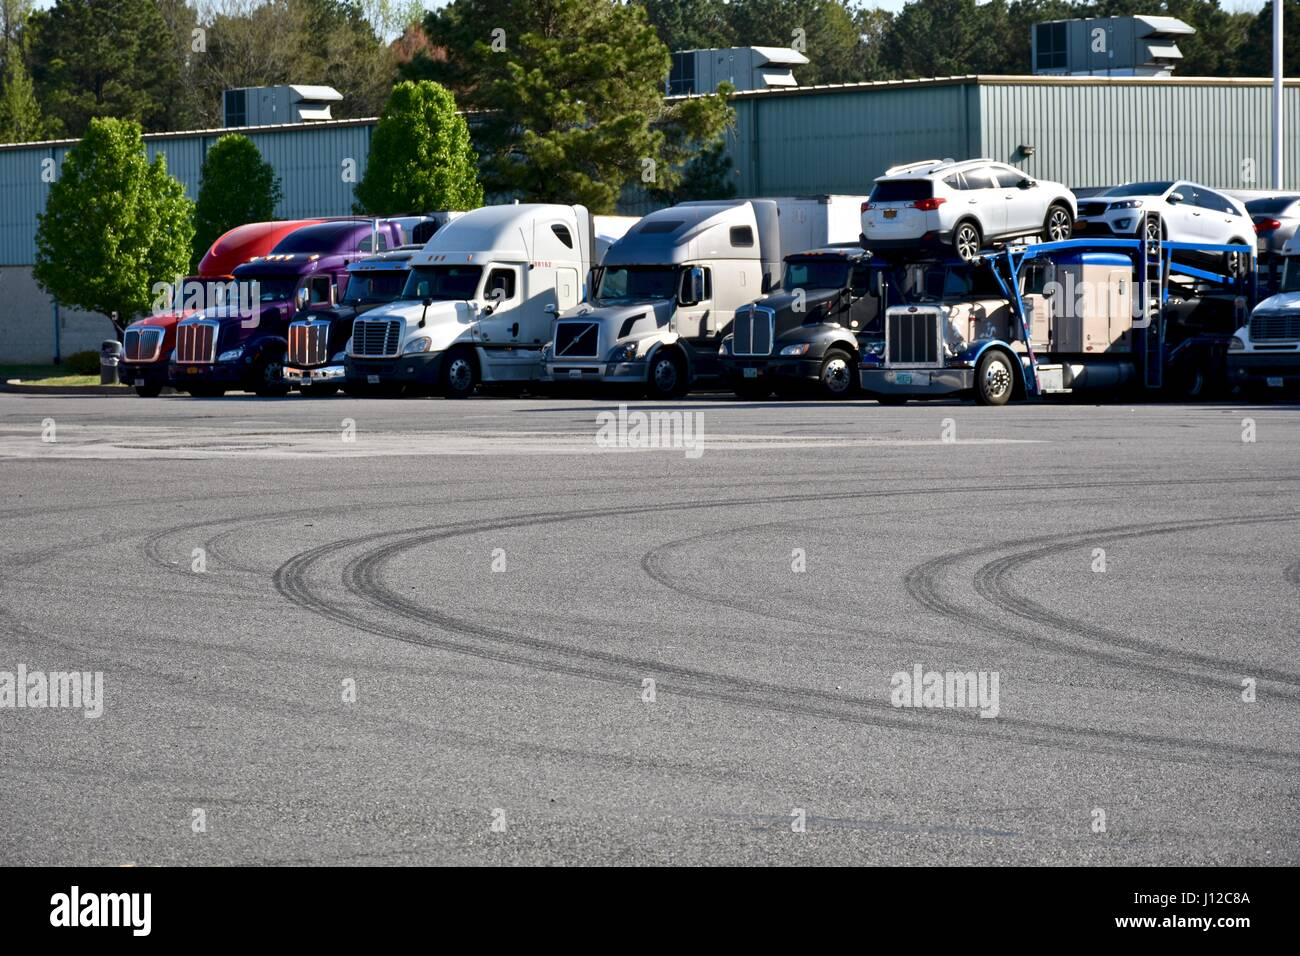 Long-haul semi trucks parked at truck stop - Stock Image